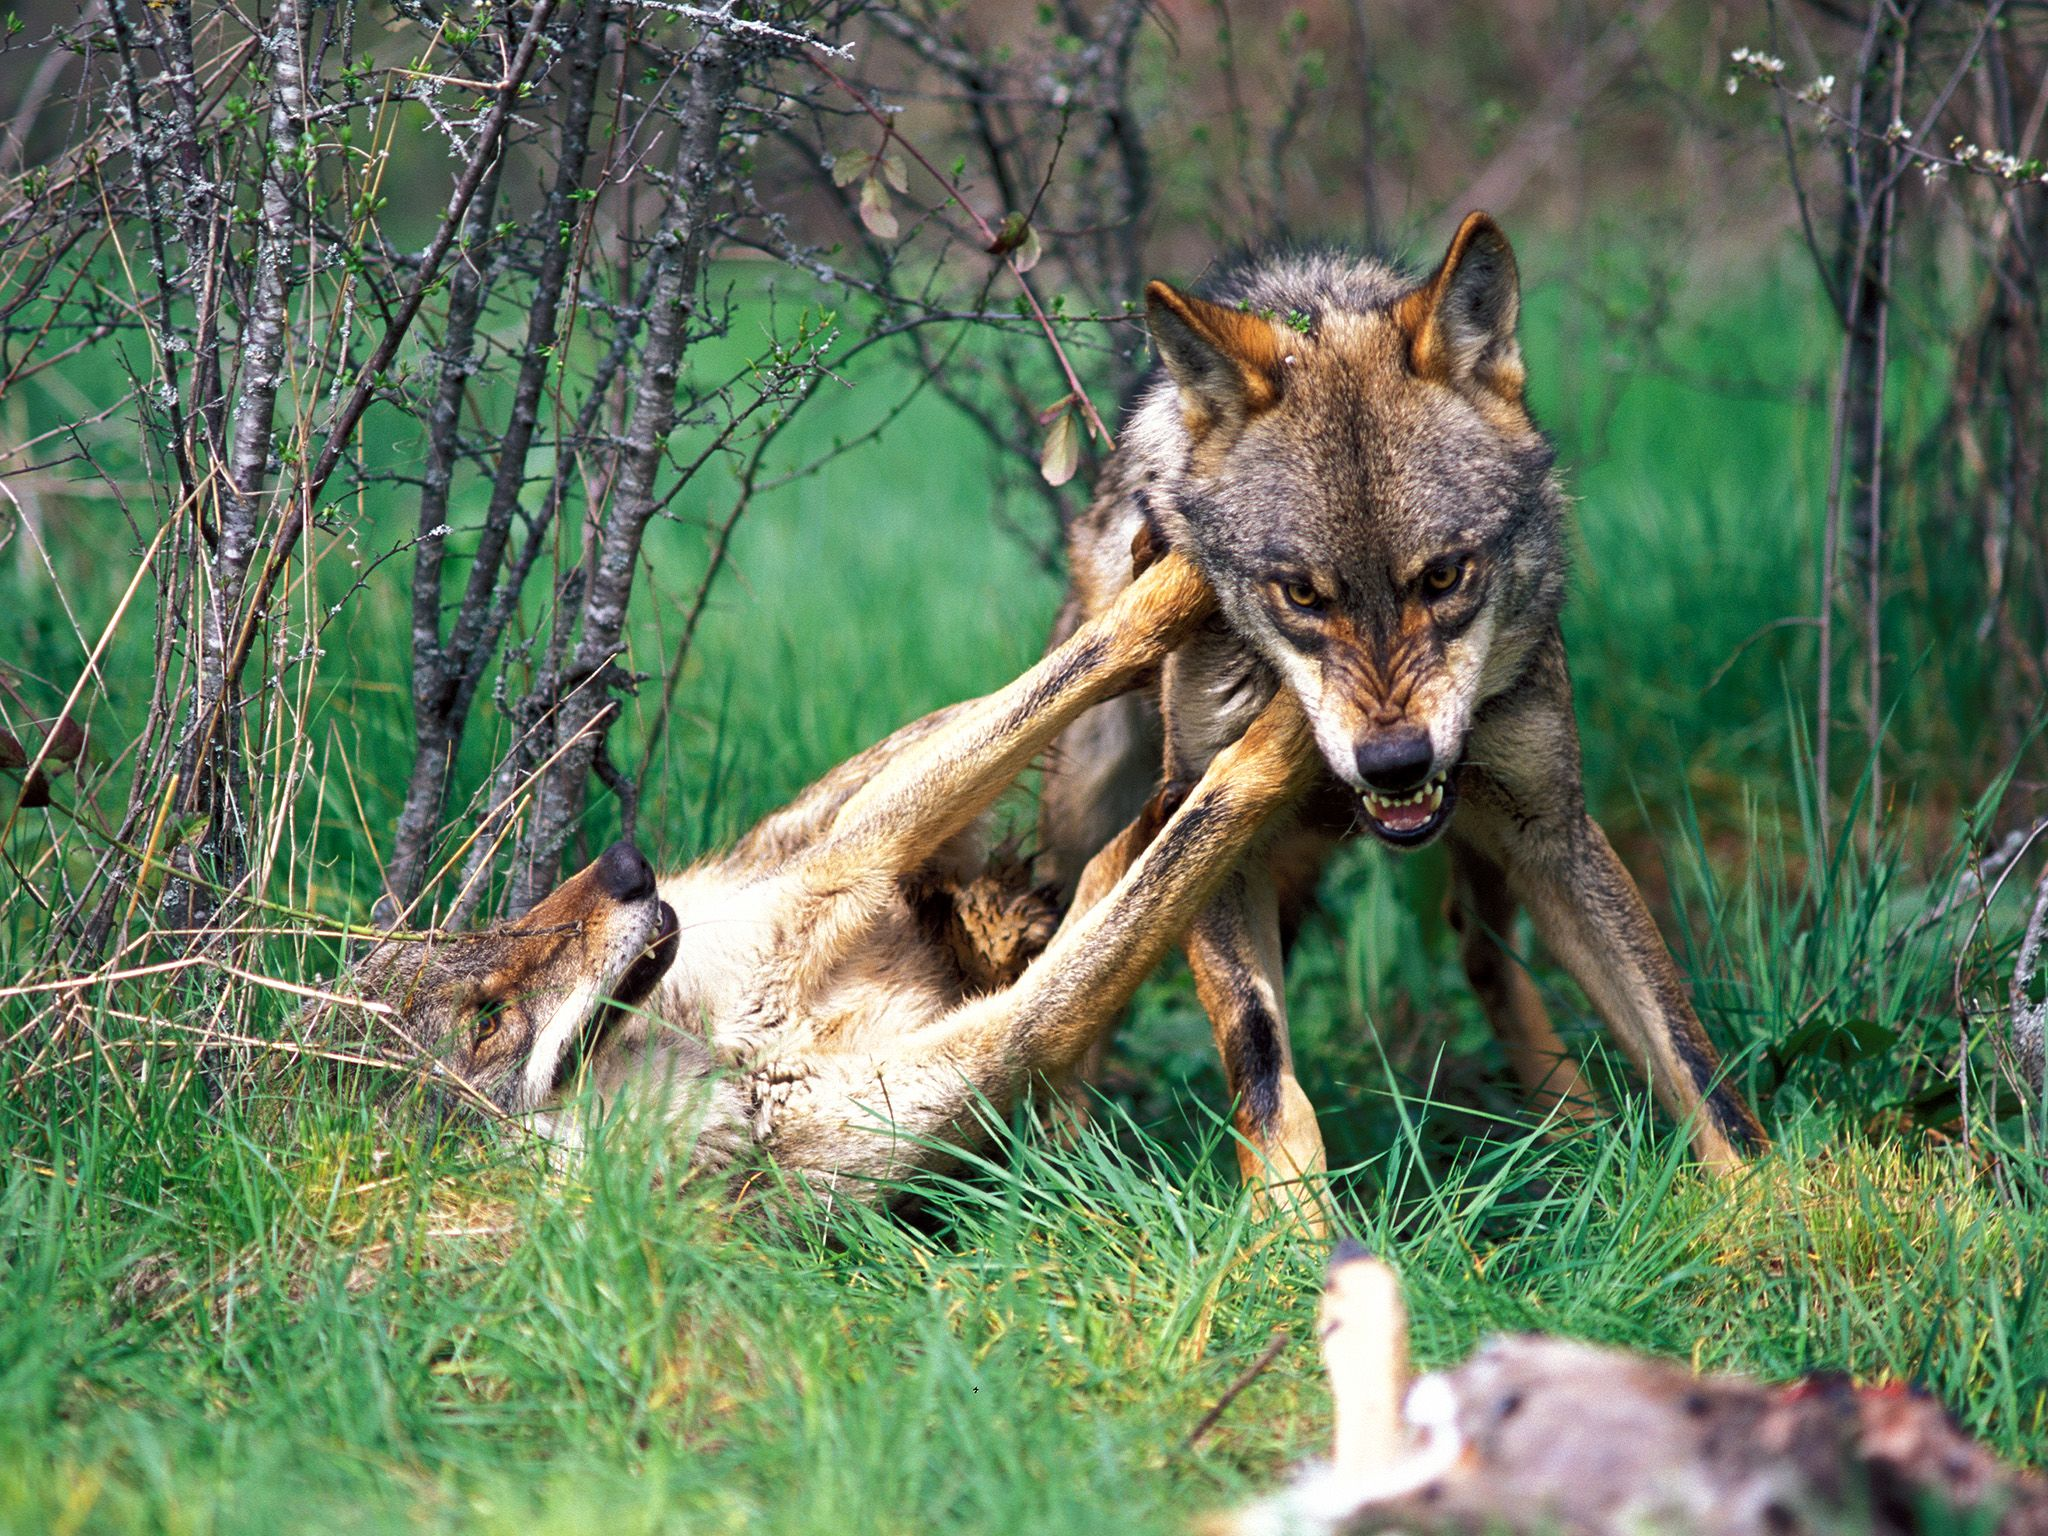 The Iberian wolf, a predator which can be found in forests and plains of northwestern Spain, demo... [Photo of the day - نوامبر 2014]